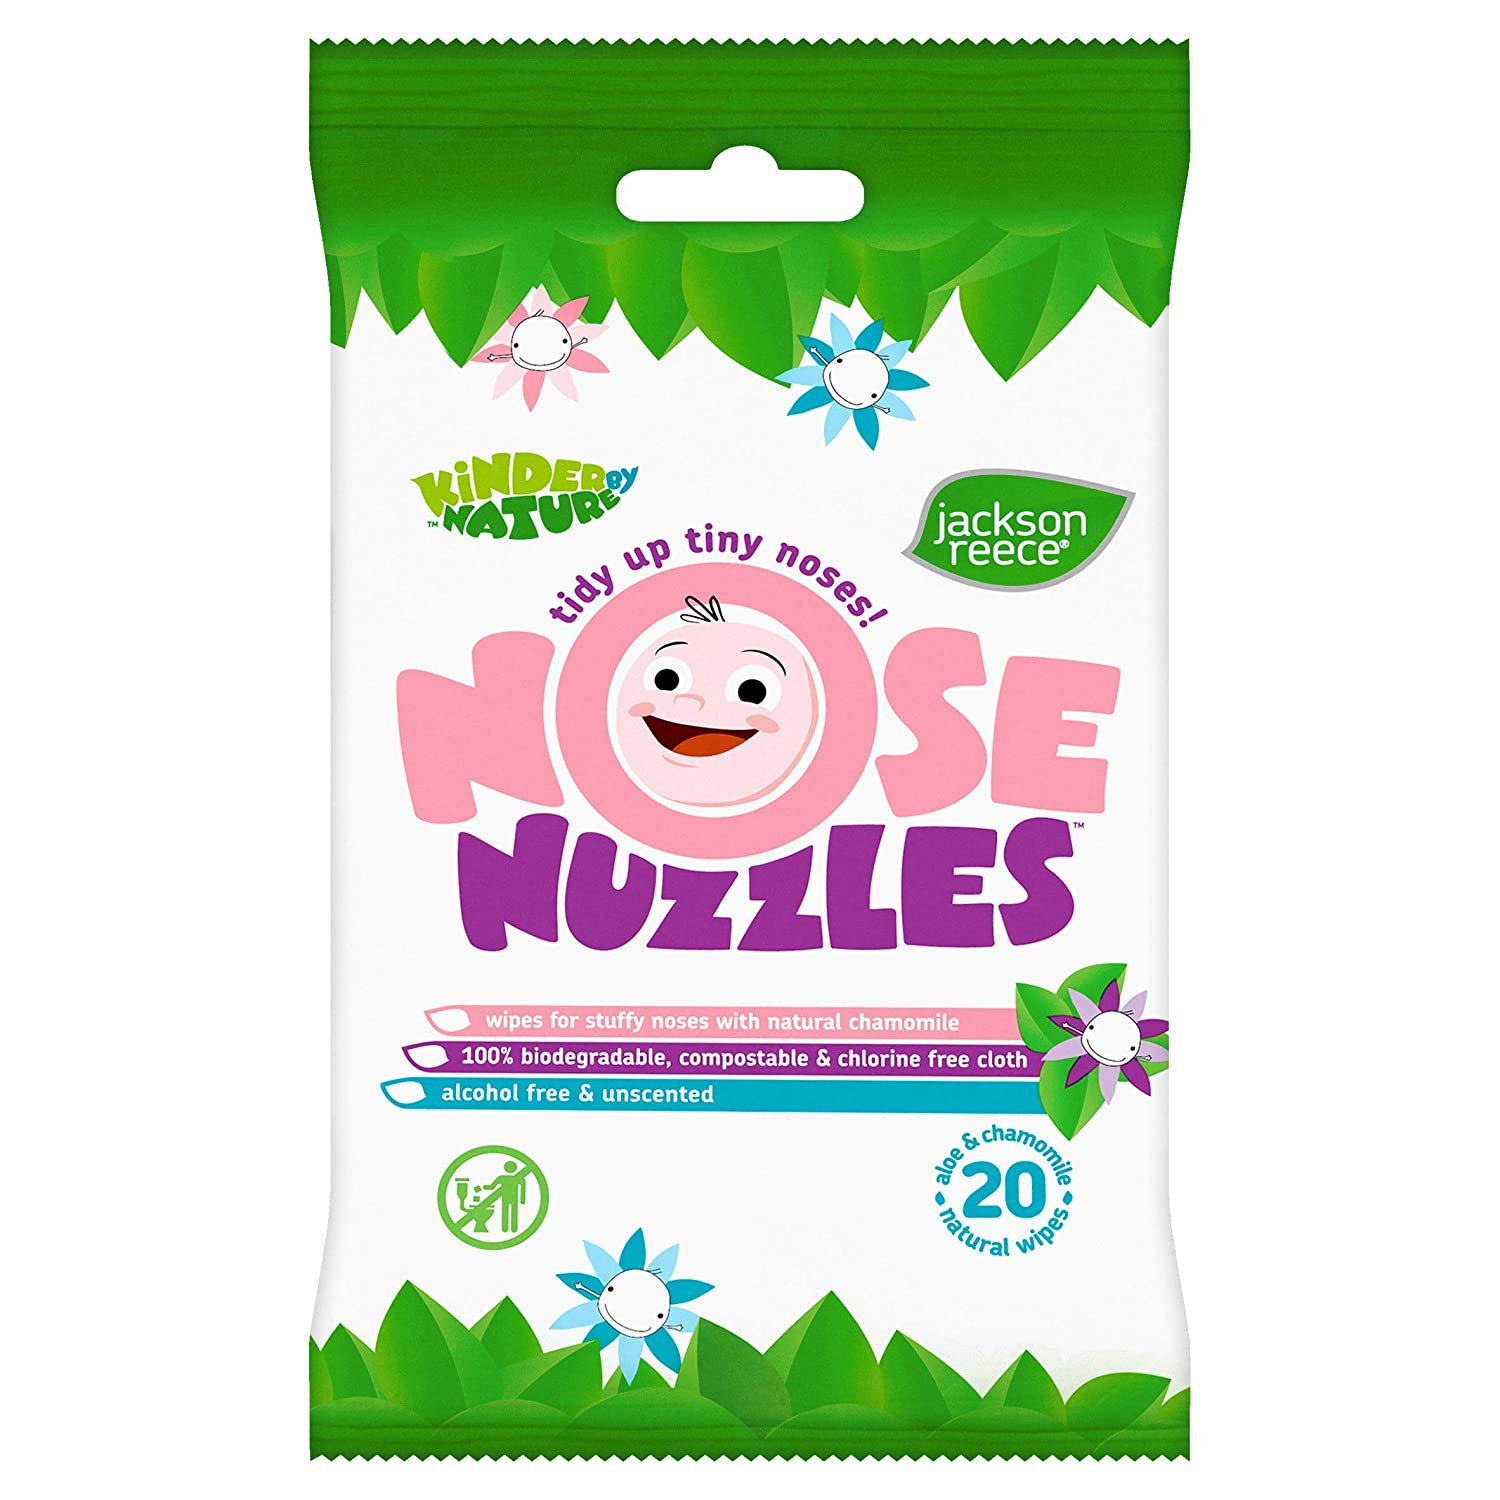 Jackson Reece Natural Nose Nuzzles Wipes - 100% Biodegradable